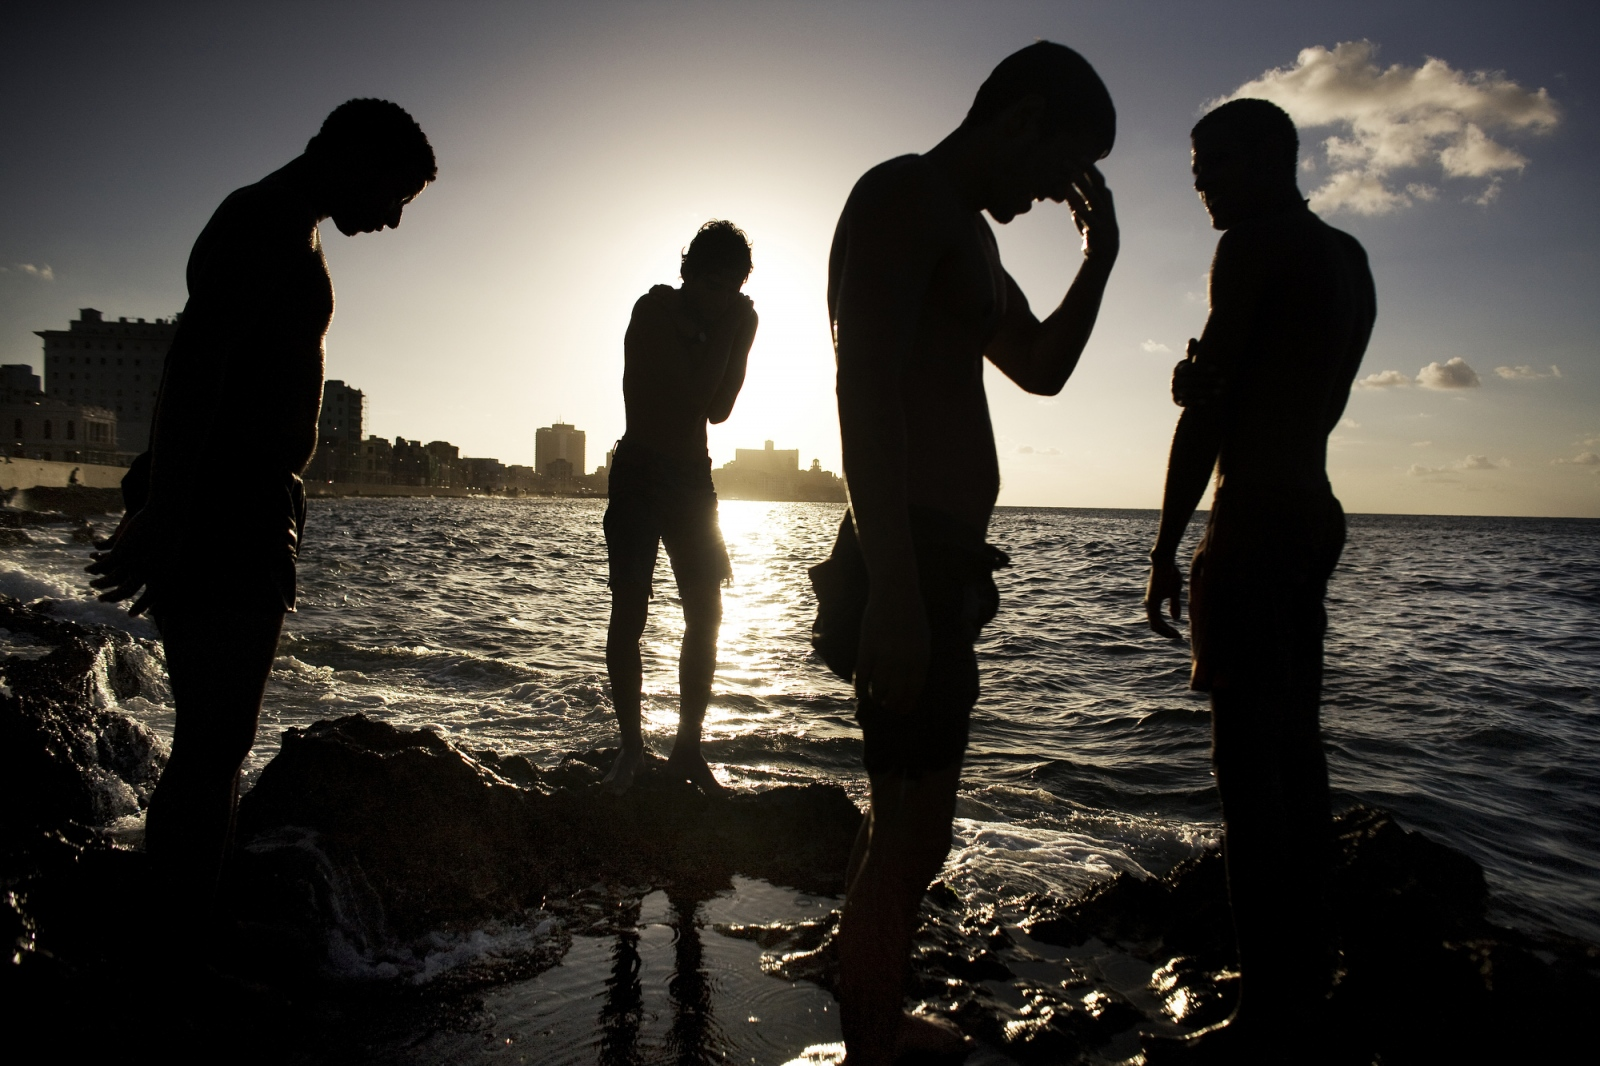 A group of Cuban young men take a break from swimming in the water in front of the Malecon sea wall in Havana, Cuba.